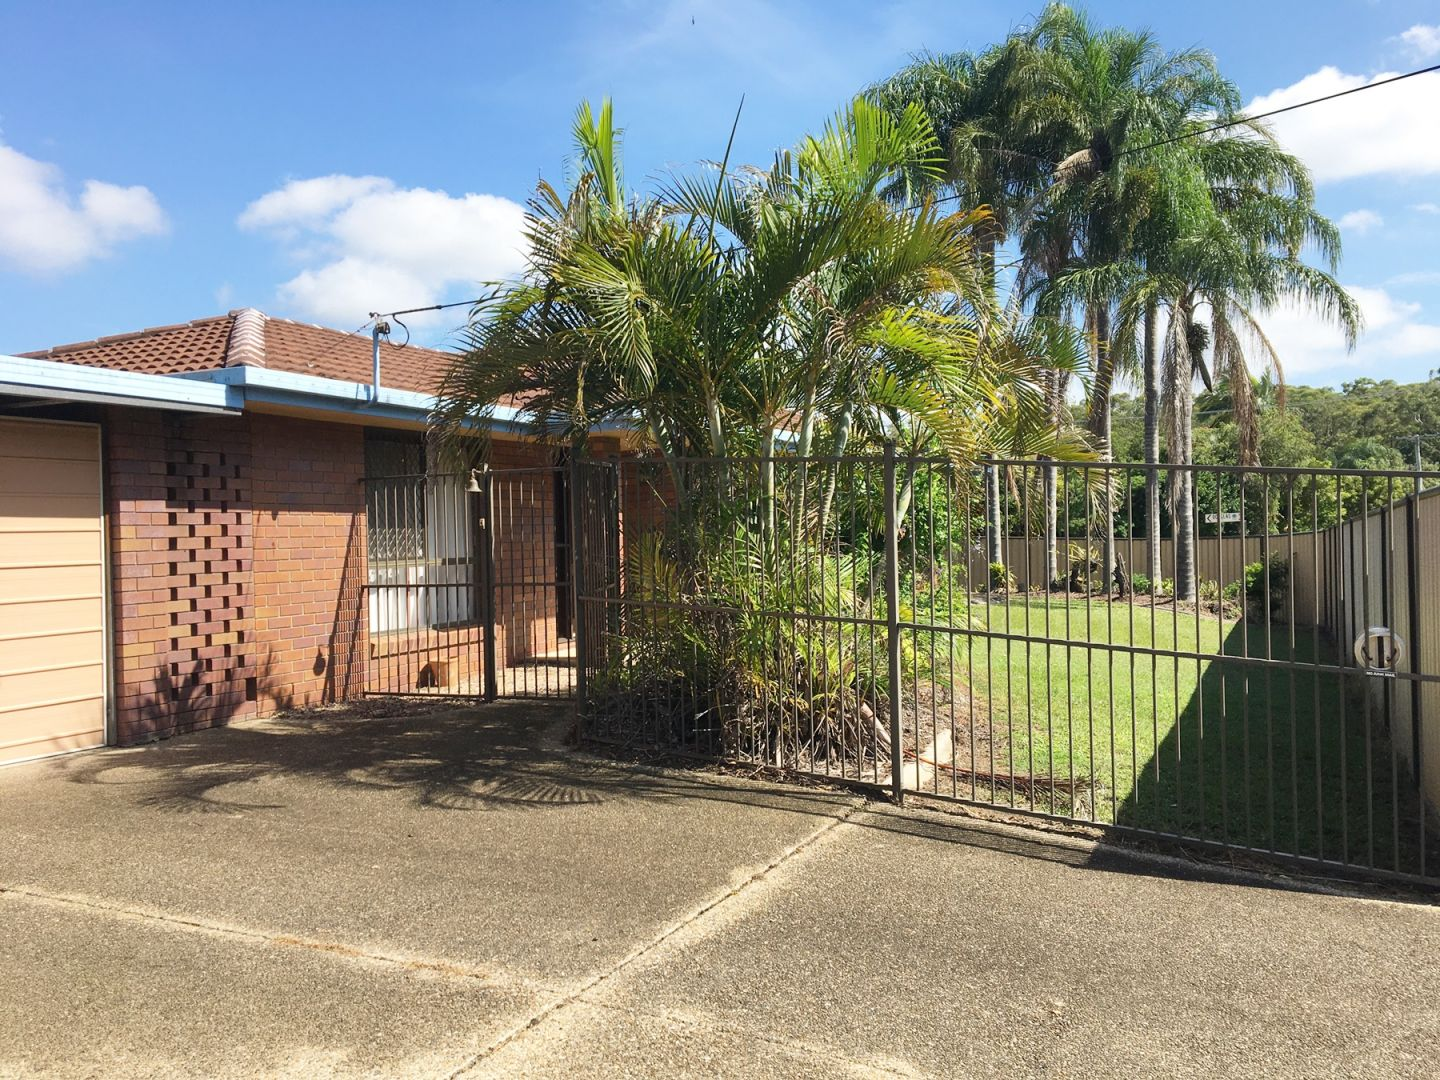 Huge Original 3 Bedroom Home with lots of Living Space, Secure Fencing & Side Access!